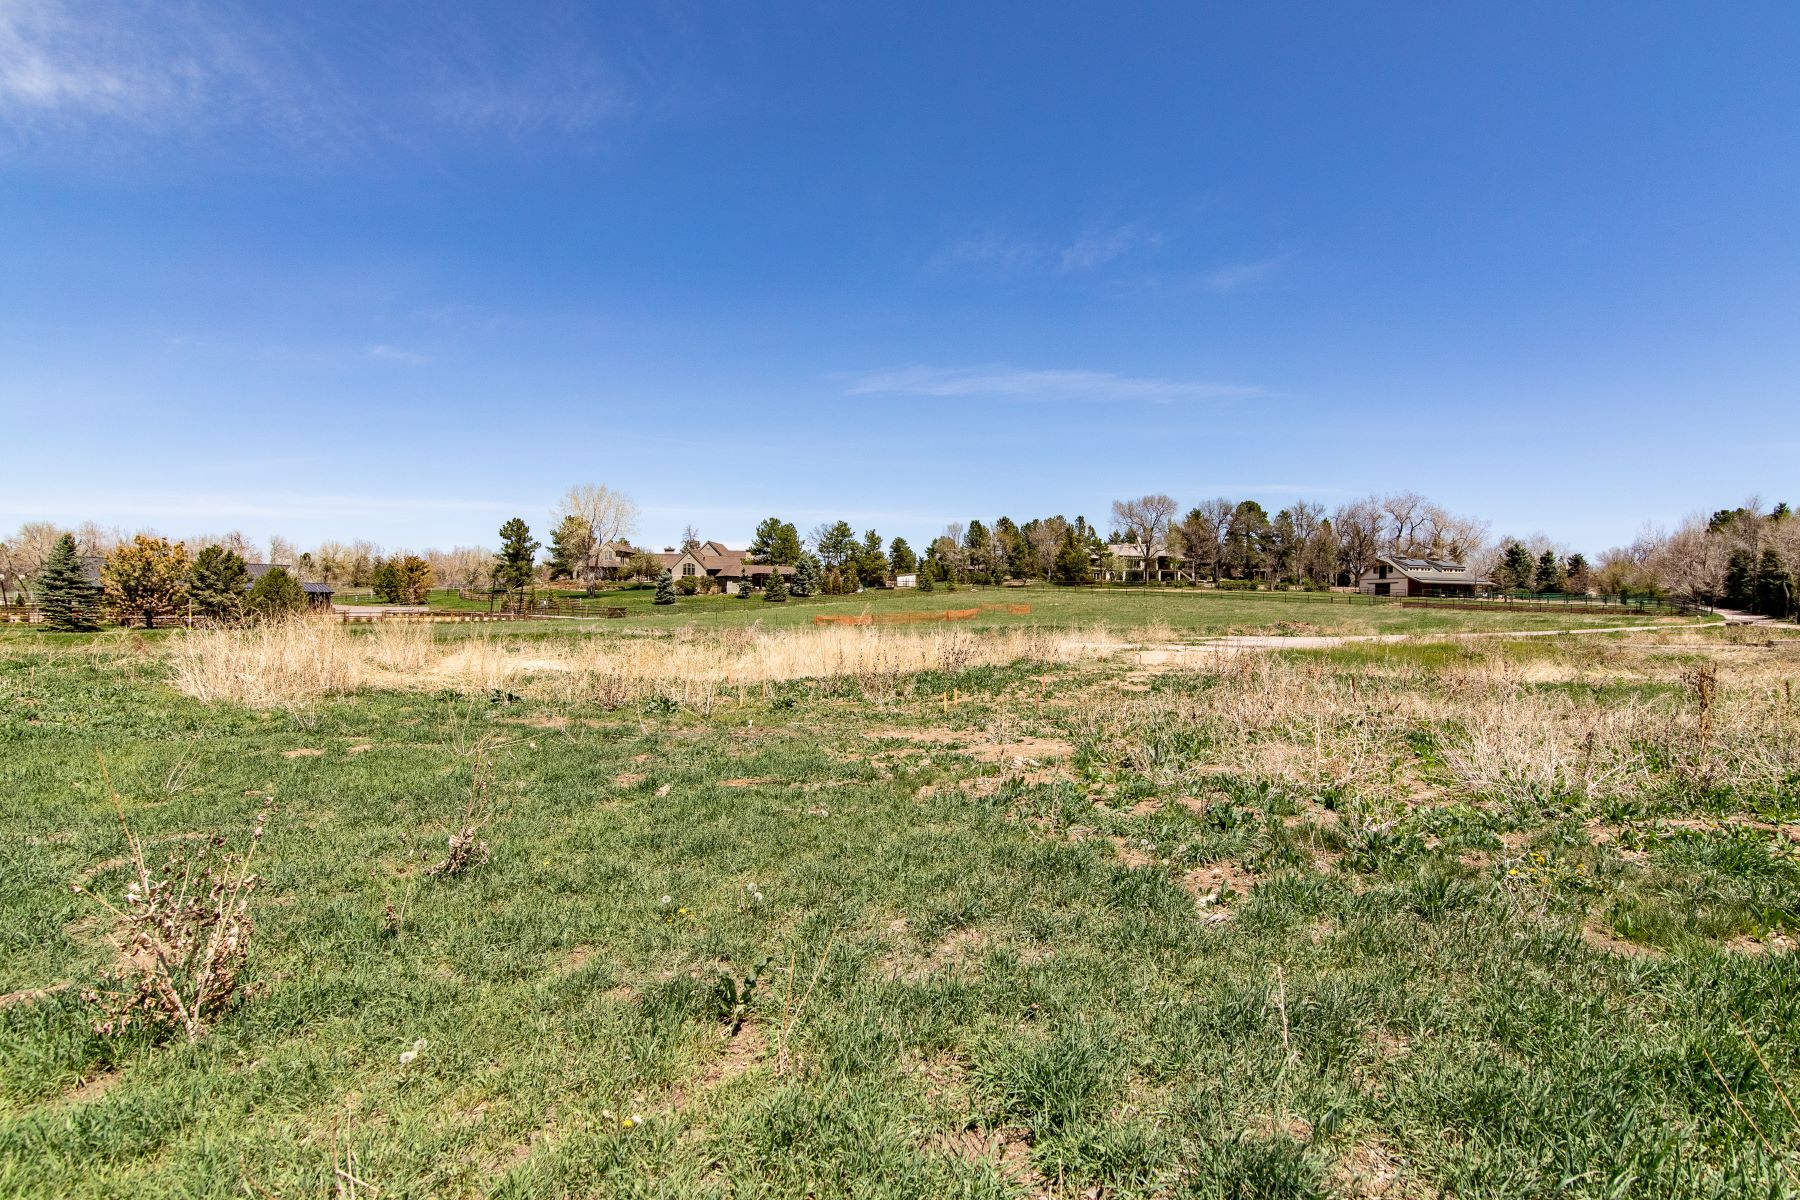 Single Family Homes для того Продажа на Opportunity to own 7.6 pastoral acres surrounded by the little dry creek in GWV 6 & 7 Waring Lane, Greenwood Village, Колорадо 80121 Соединенные Штаты